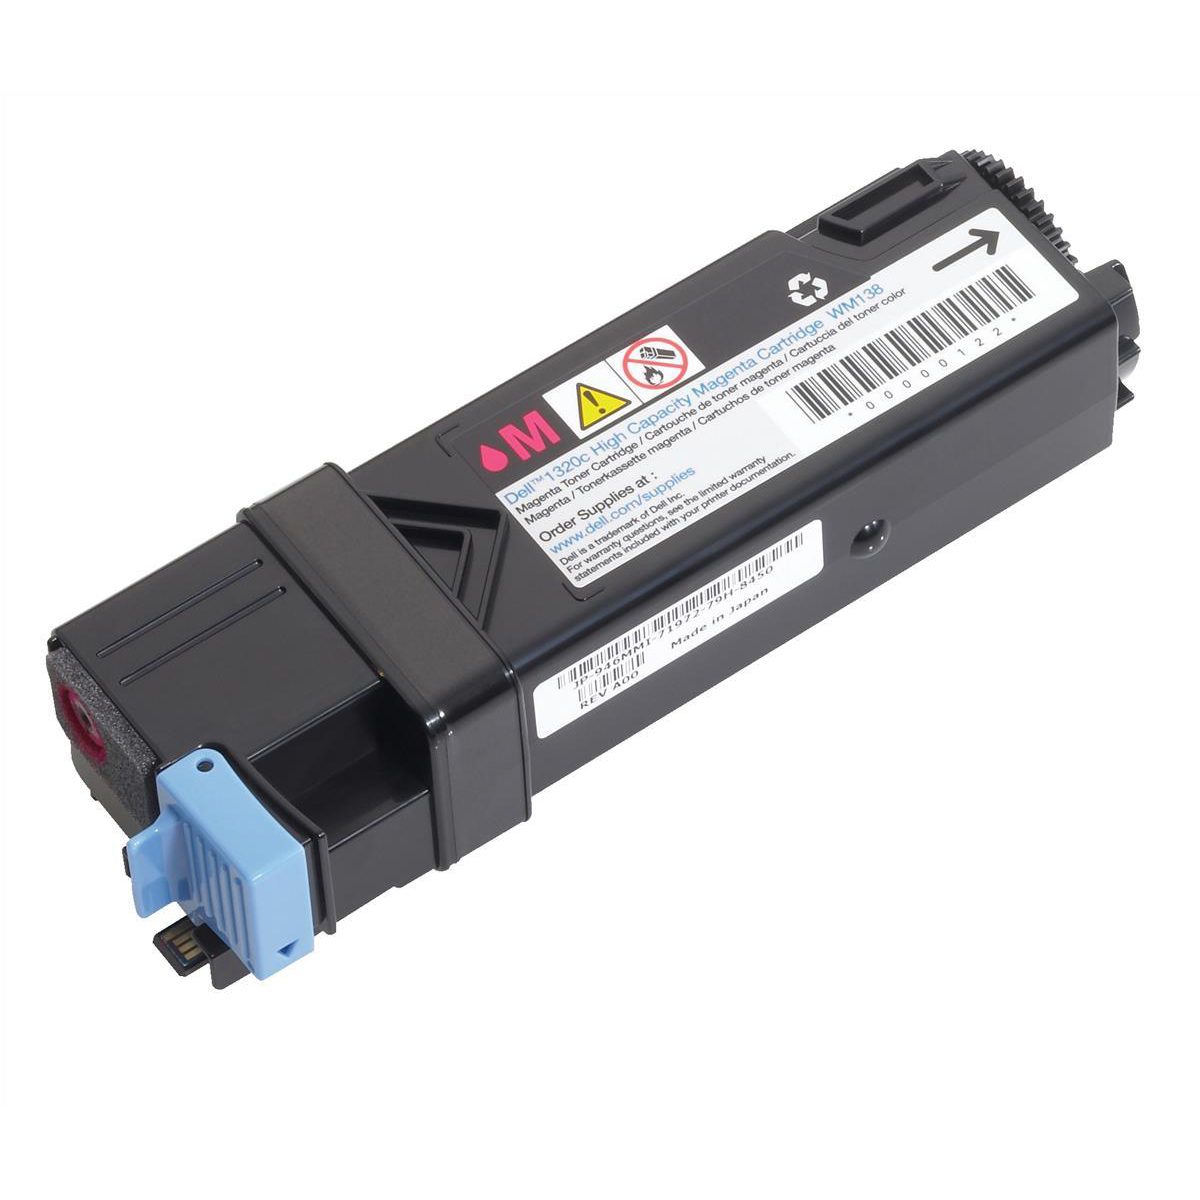 Dell KU055 Laser Toner Cartridge High Yield Page Life 2000pp Magenta Ref 593-10261